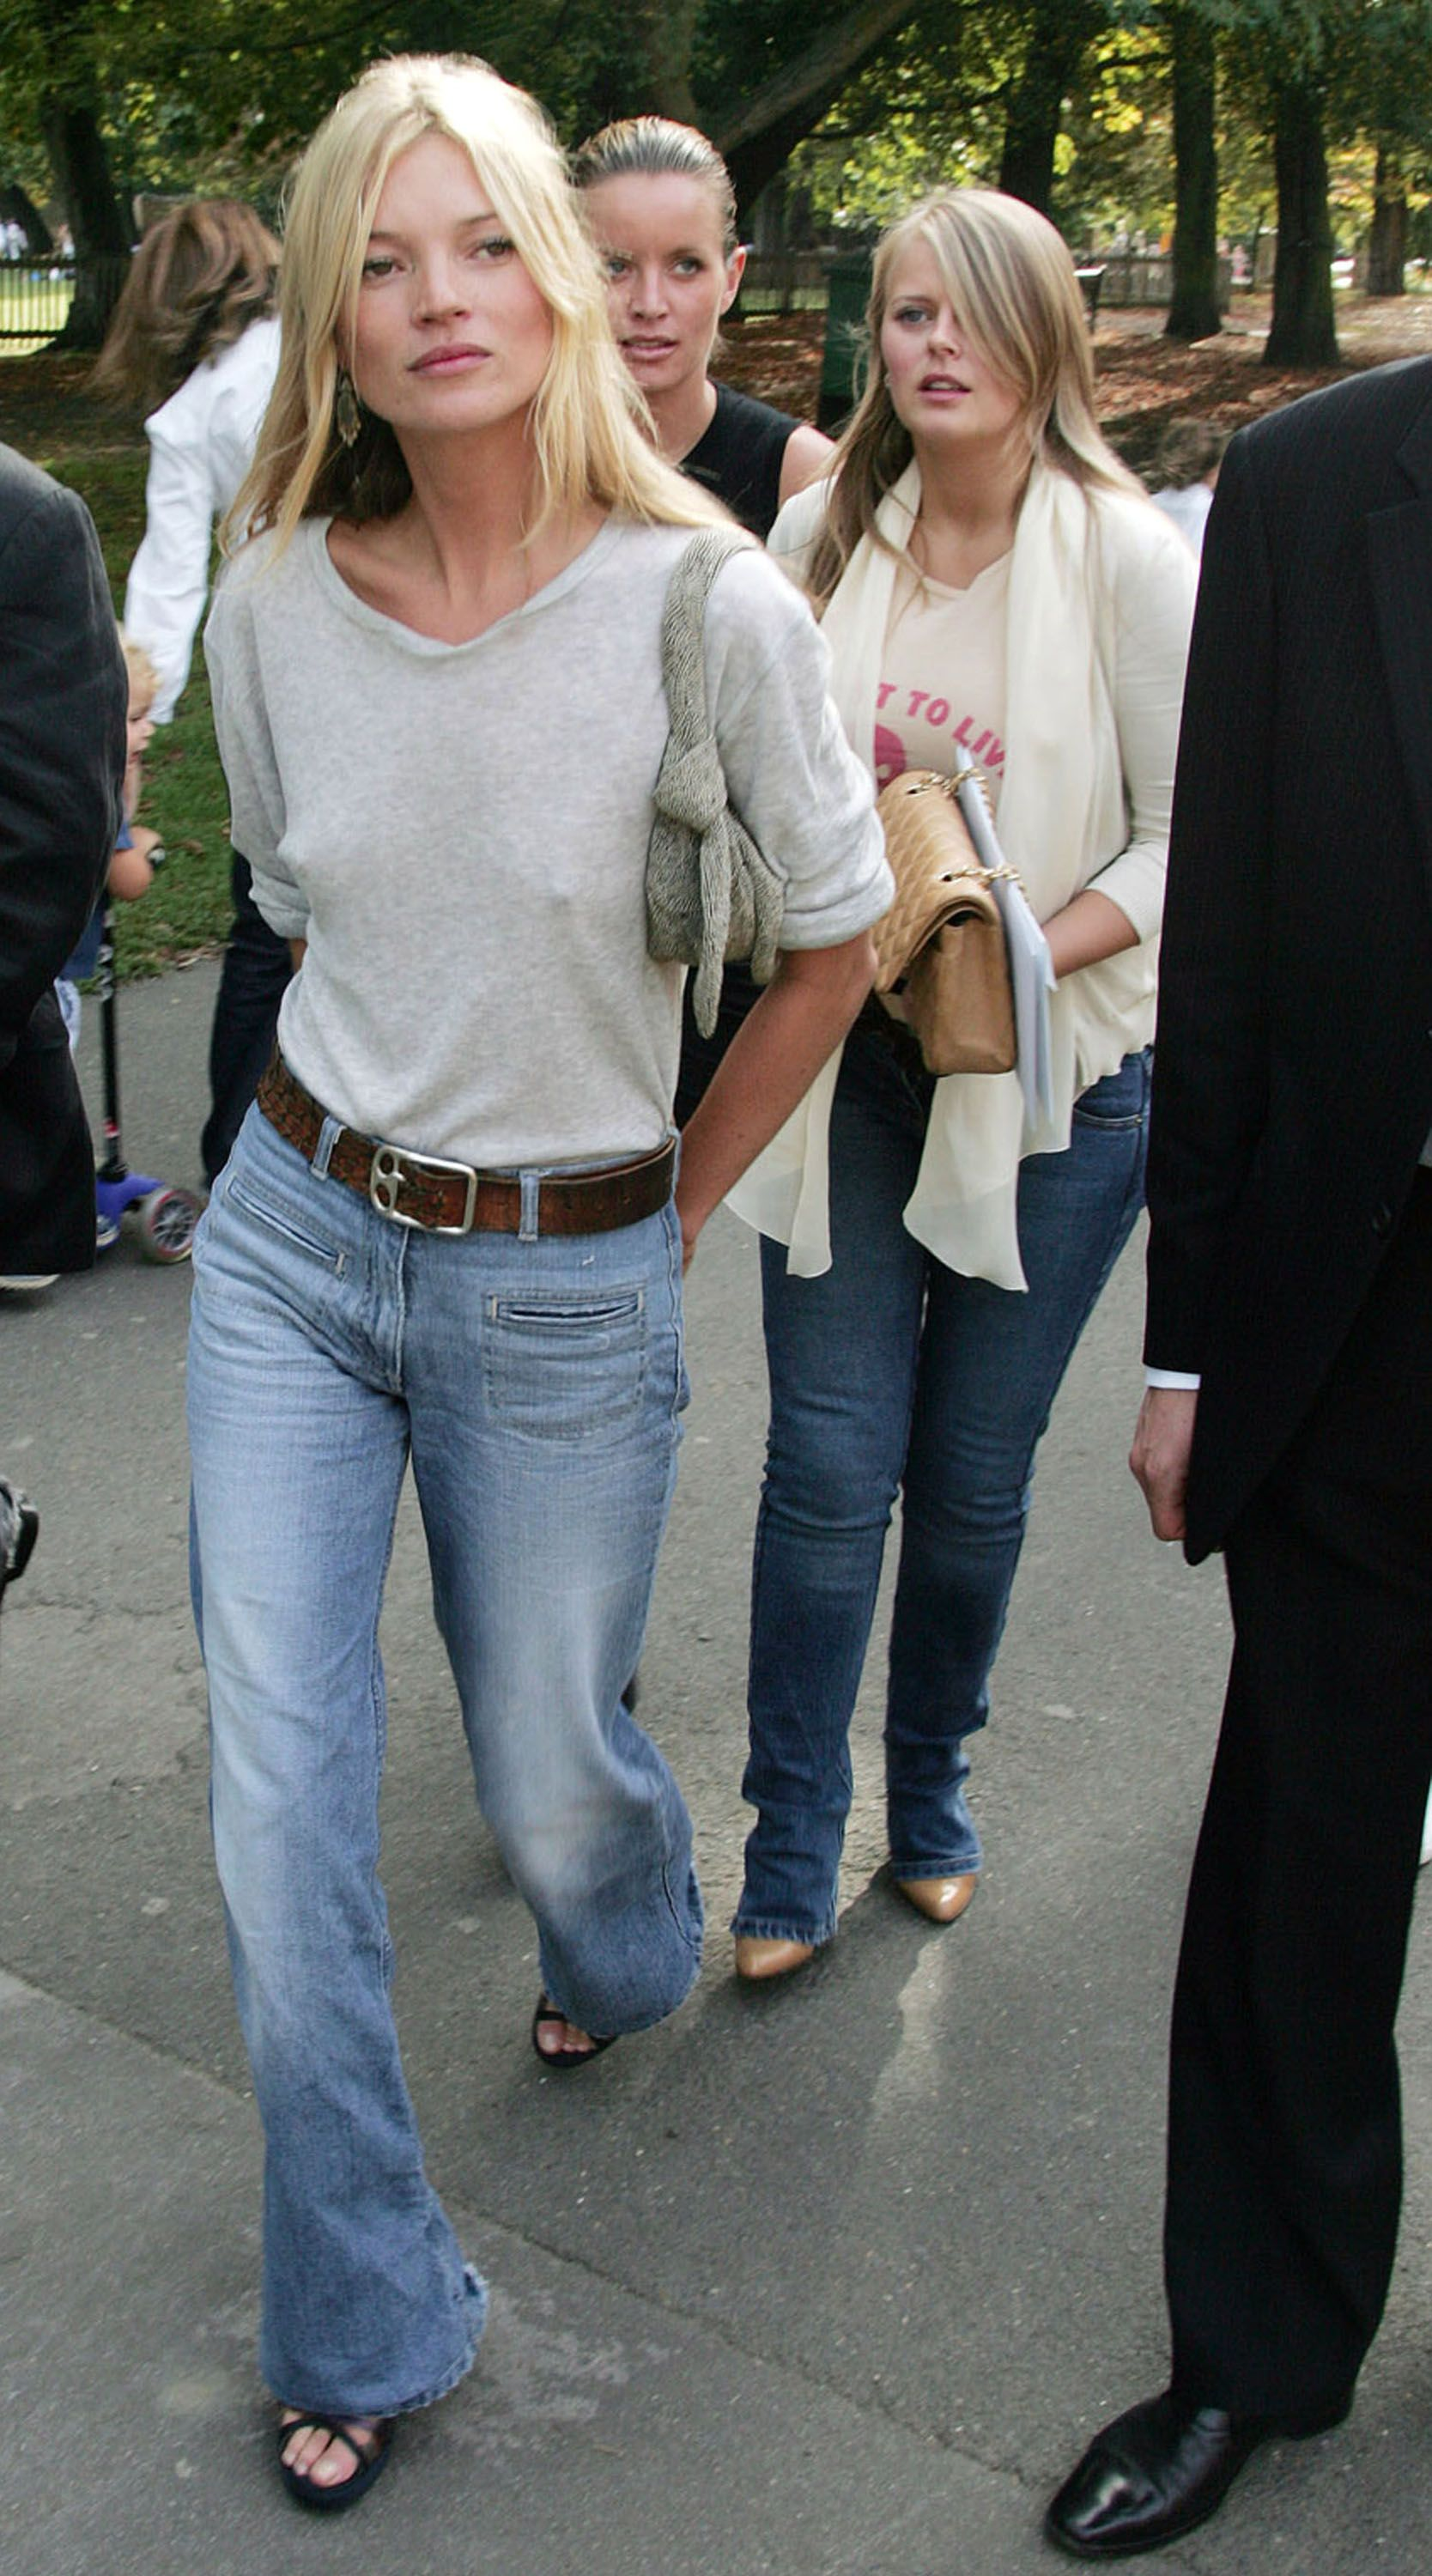 Kate Moss can conquer any style. Here she wears vintage Chloe flares with a simple top